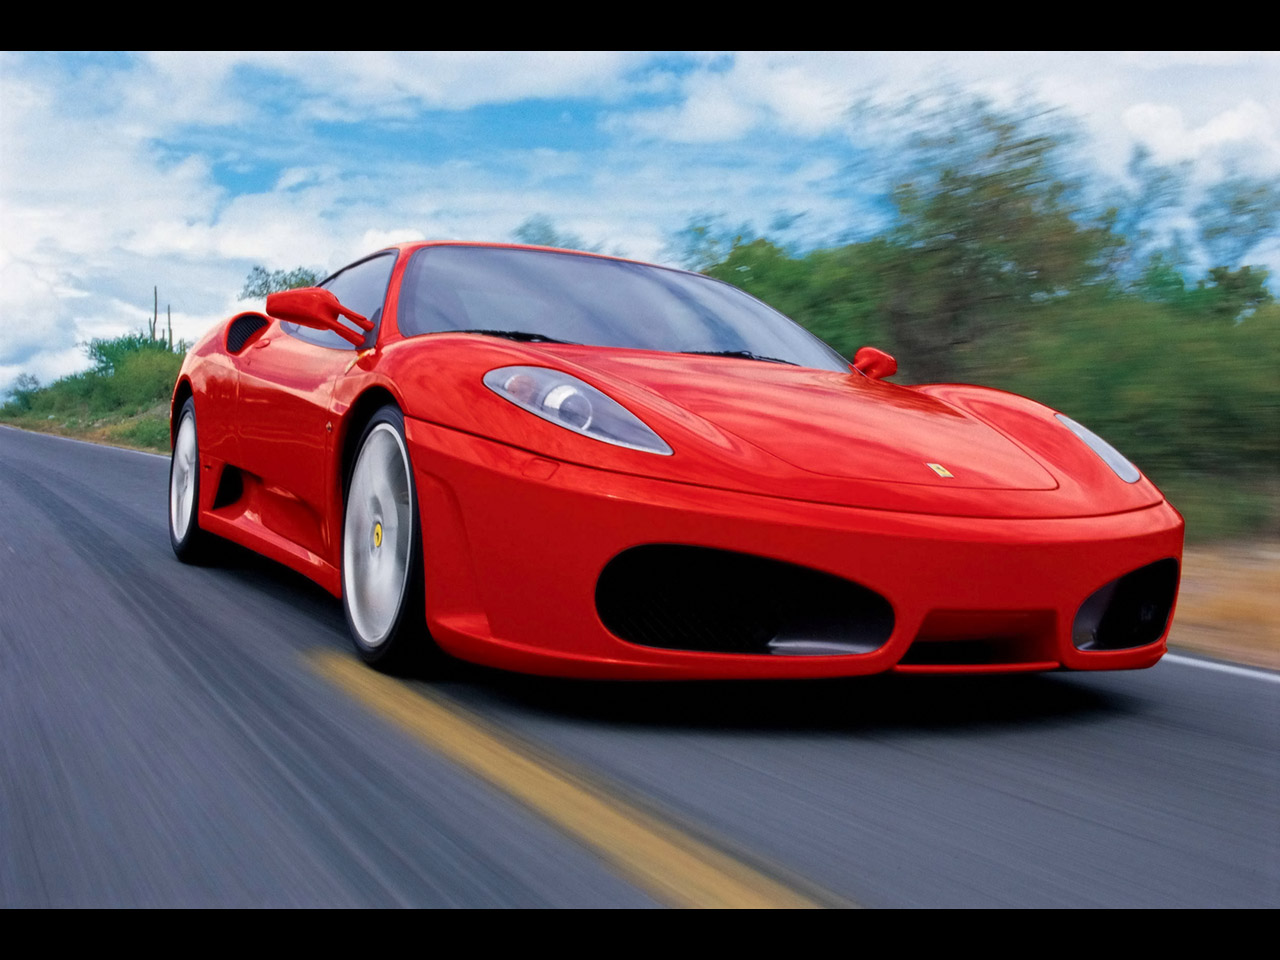 new ferrari sport car 2013 & wallpaper